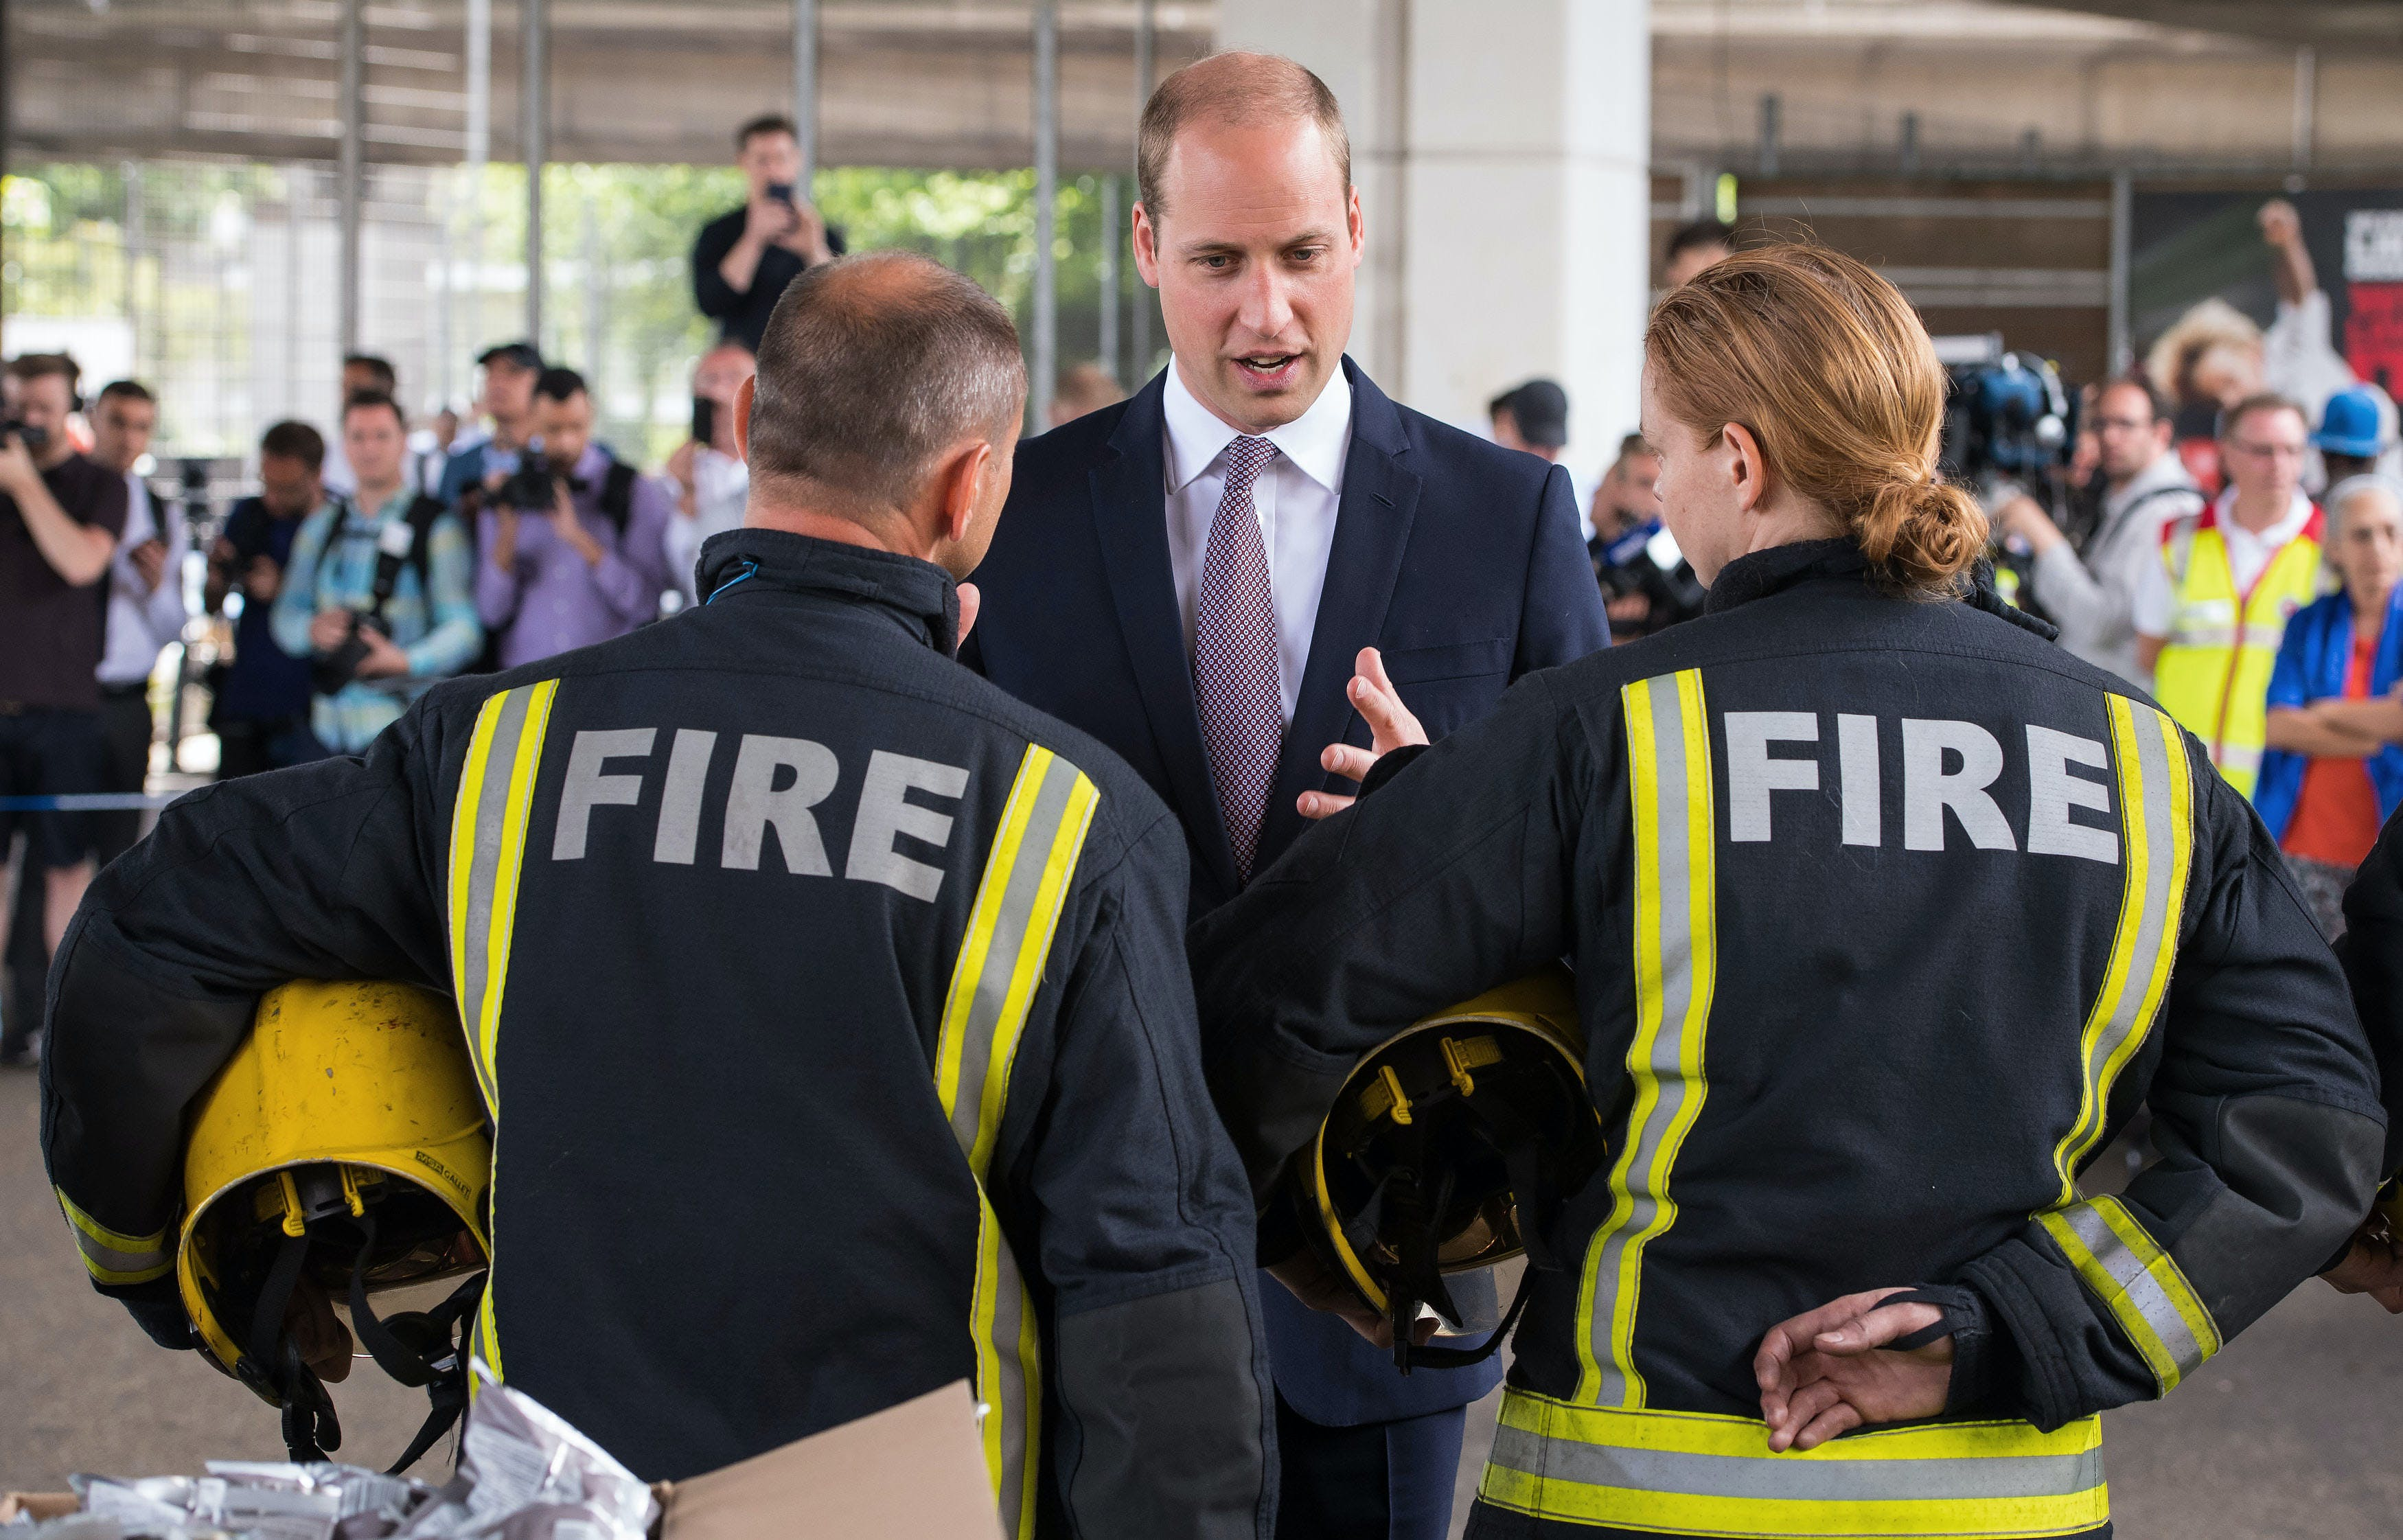 Prince William Broke Royal Protocol to Hug a Victim of the London High-Rise Fire